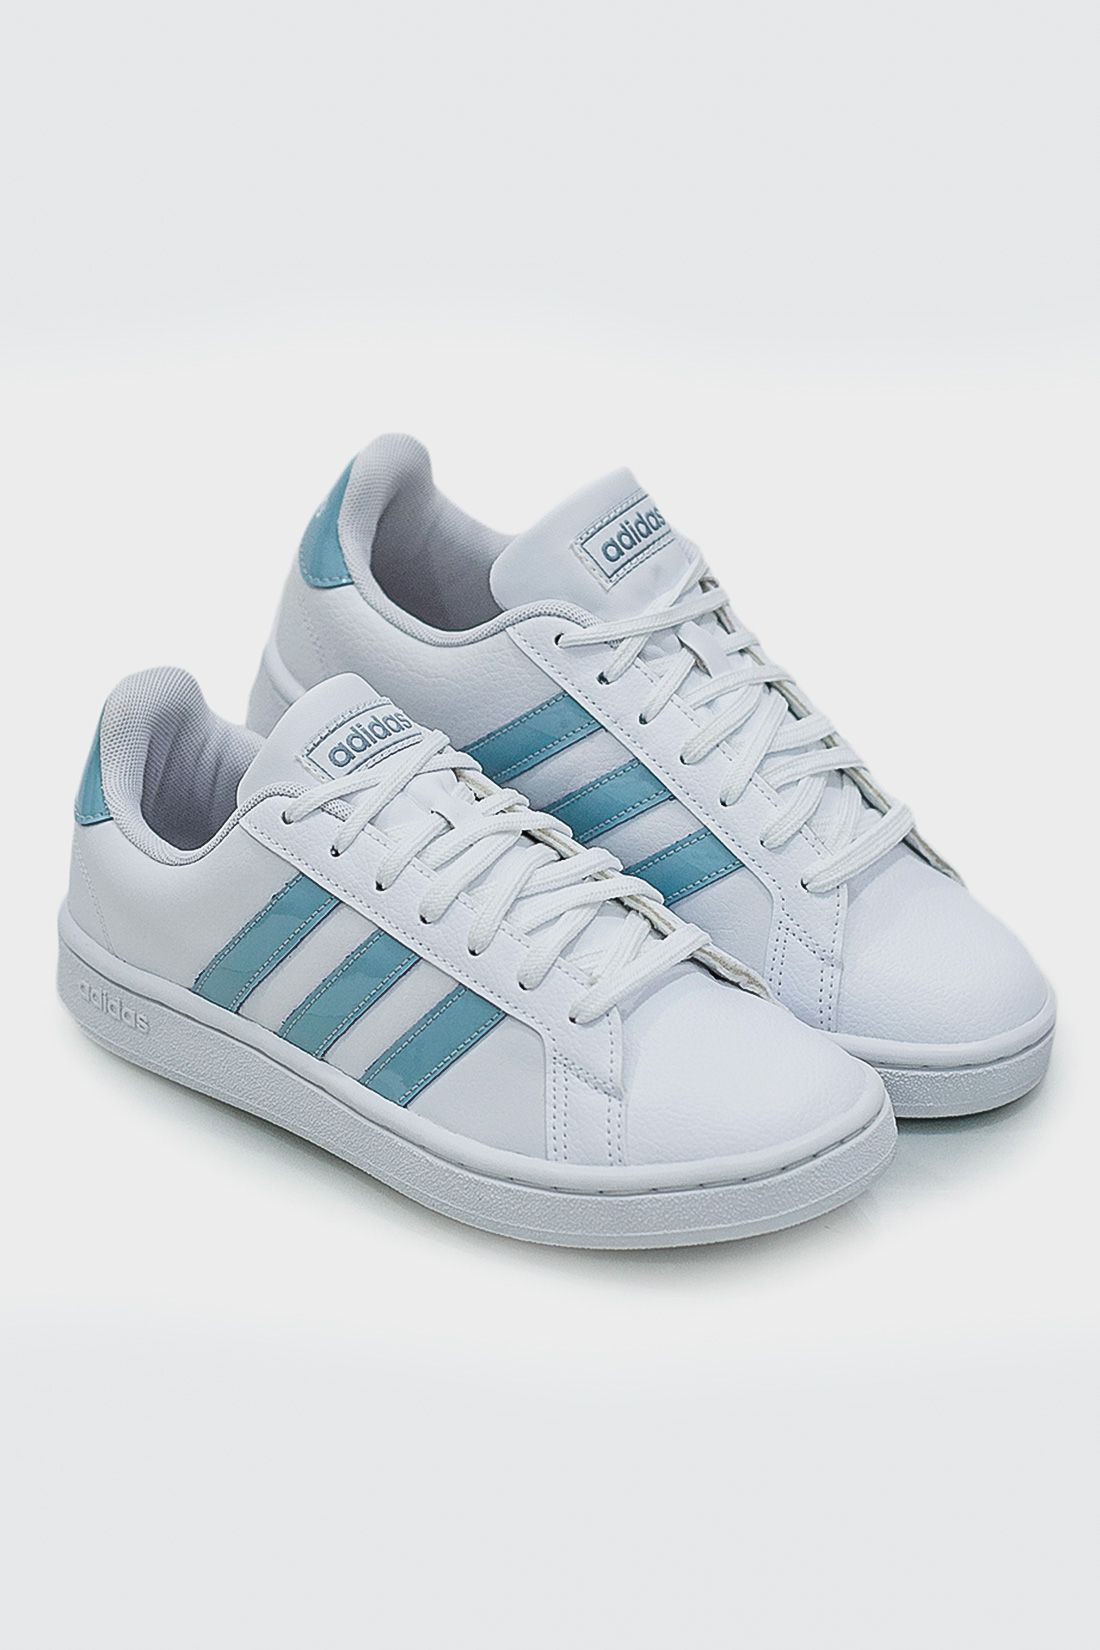 Tenis Casual Fem Adidas Grand Court